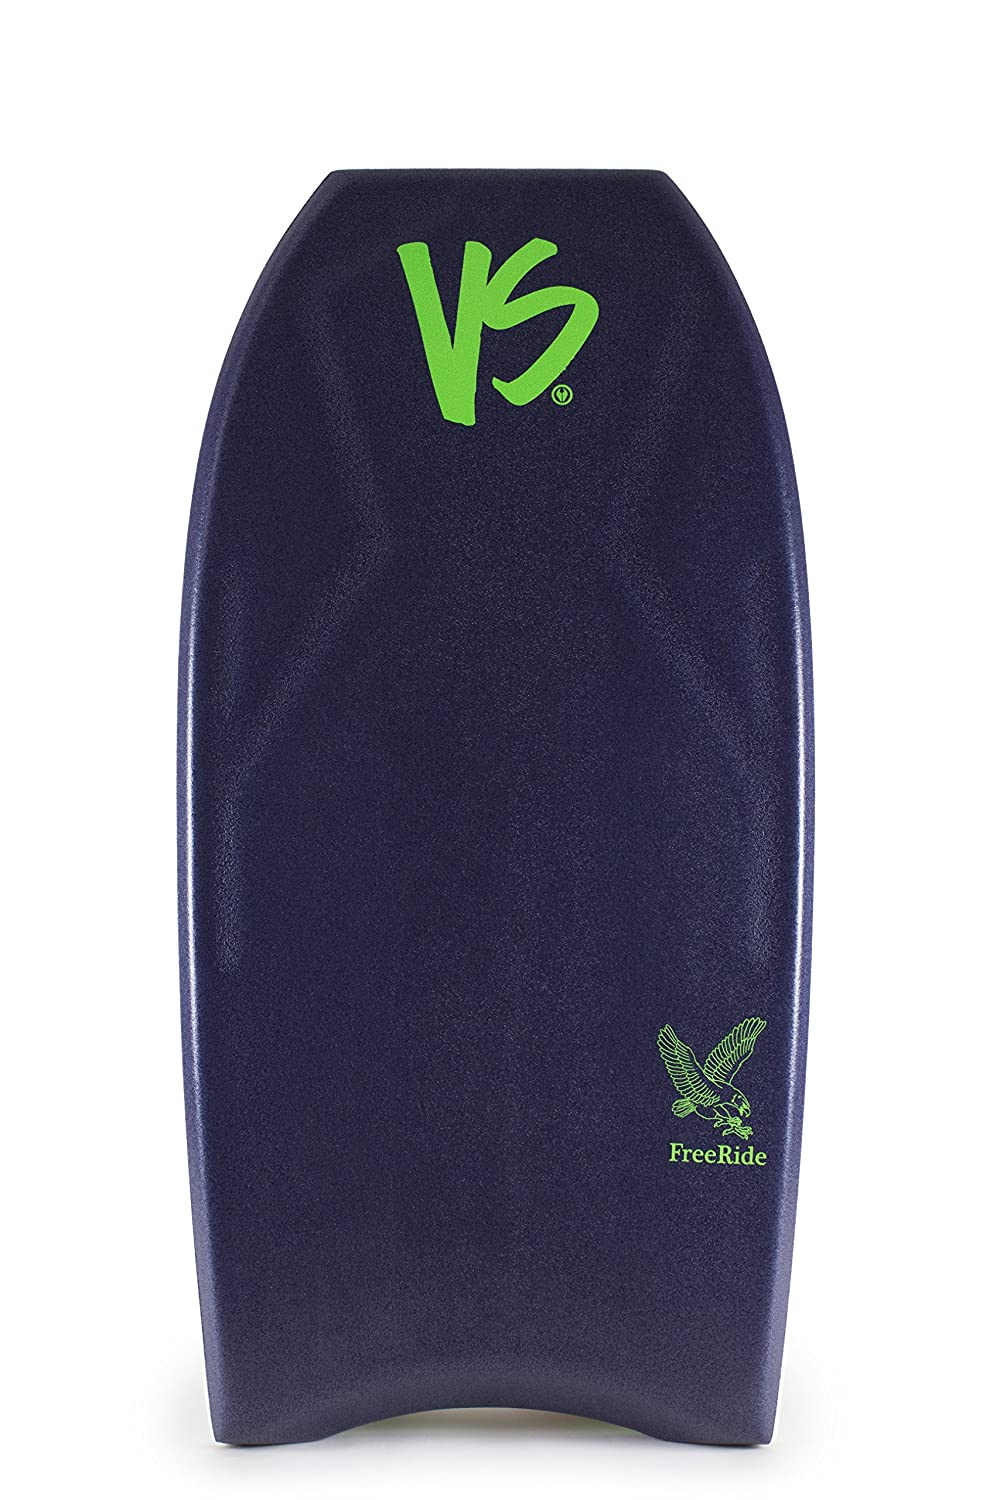 VS Bodyboards Free Tension Tech Bodyboard